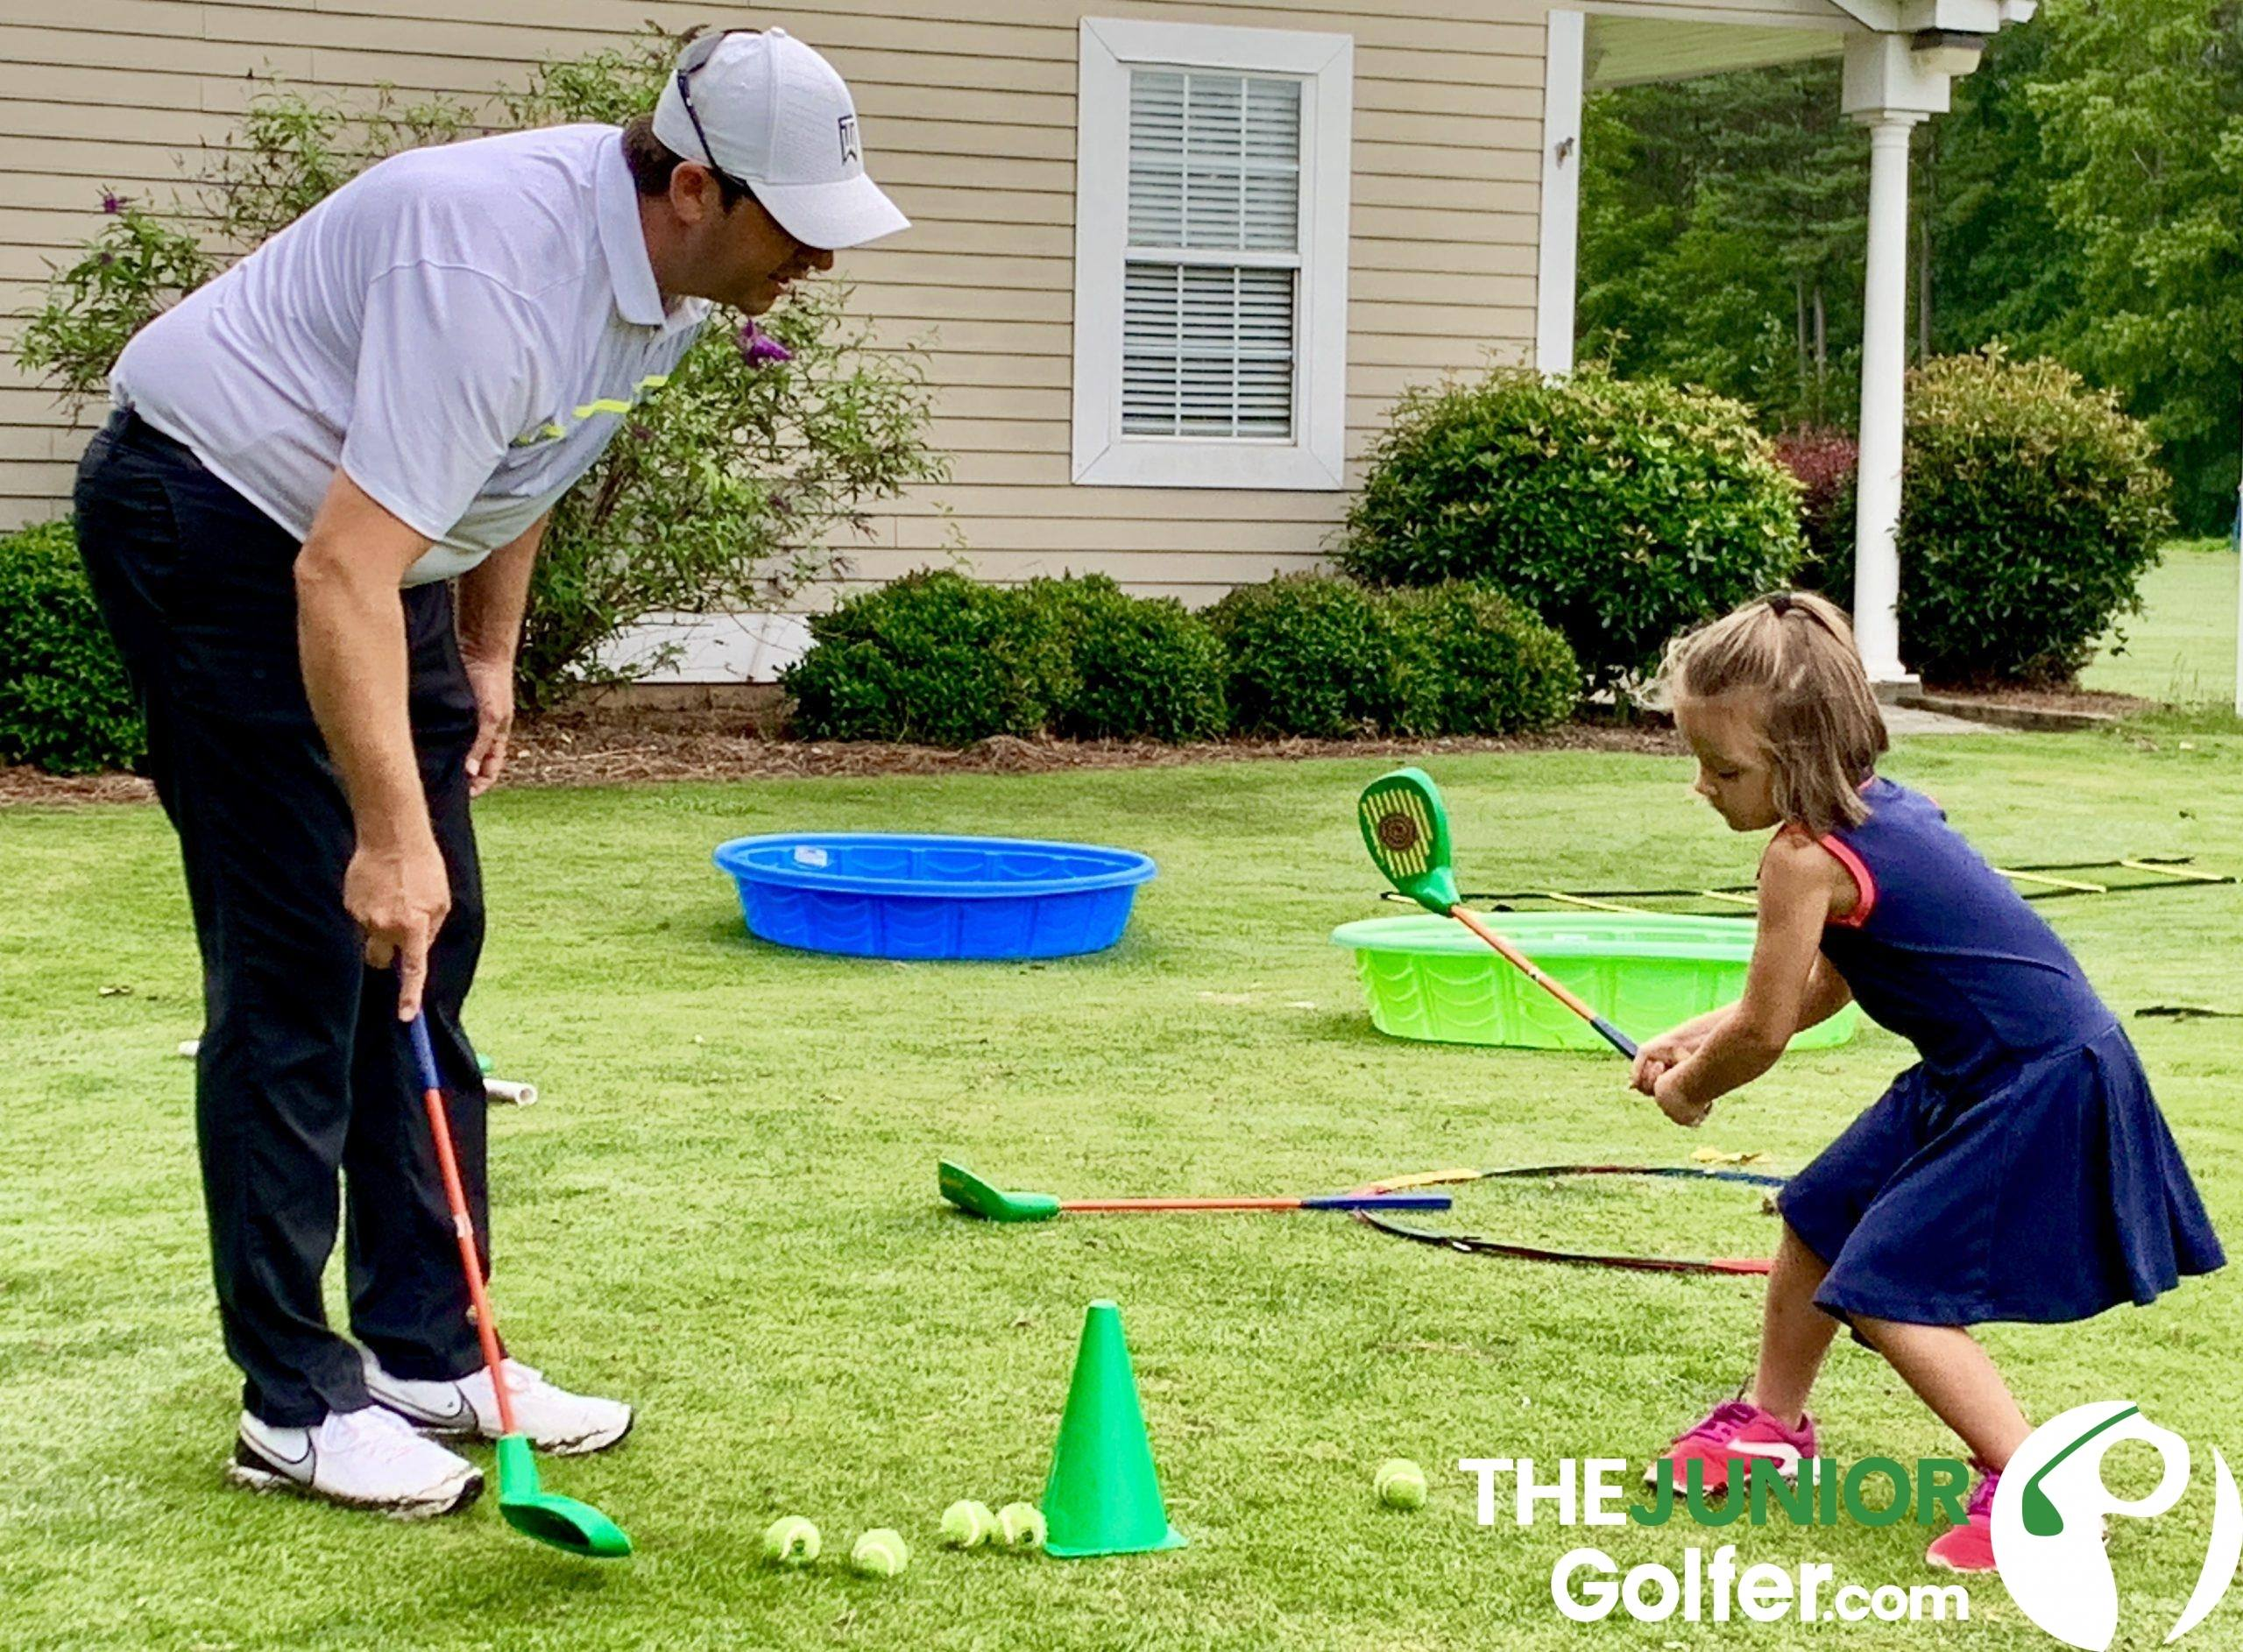 where can i find golf lessons for very young kids